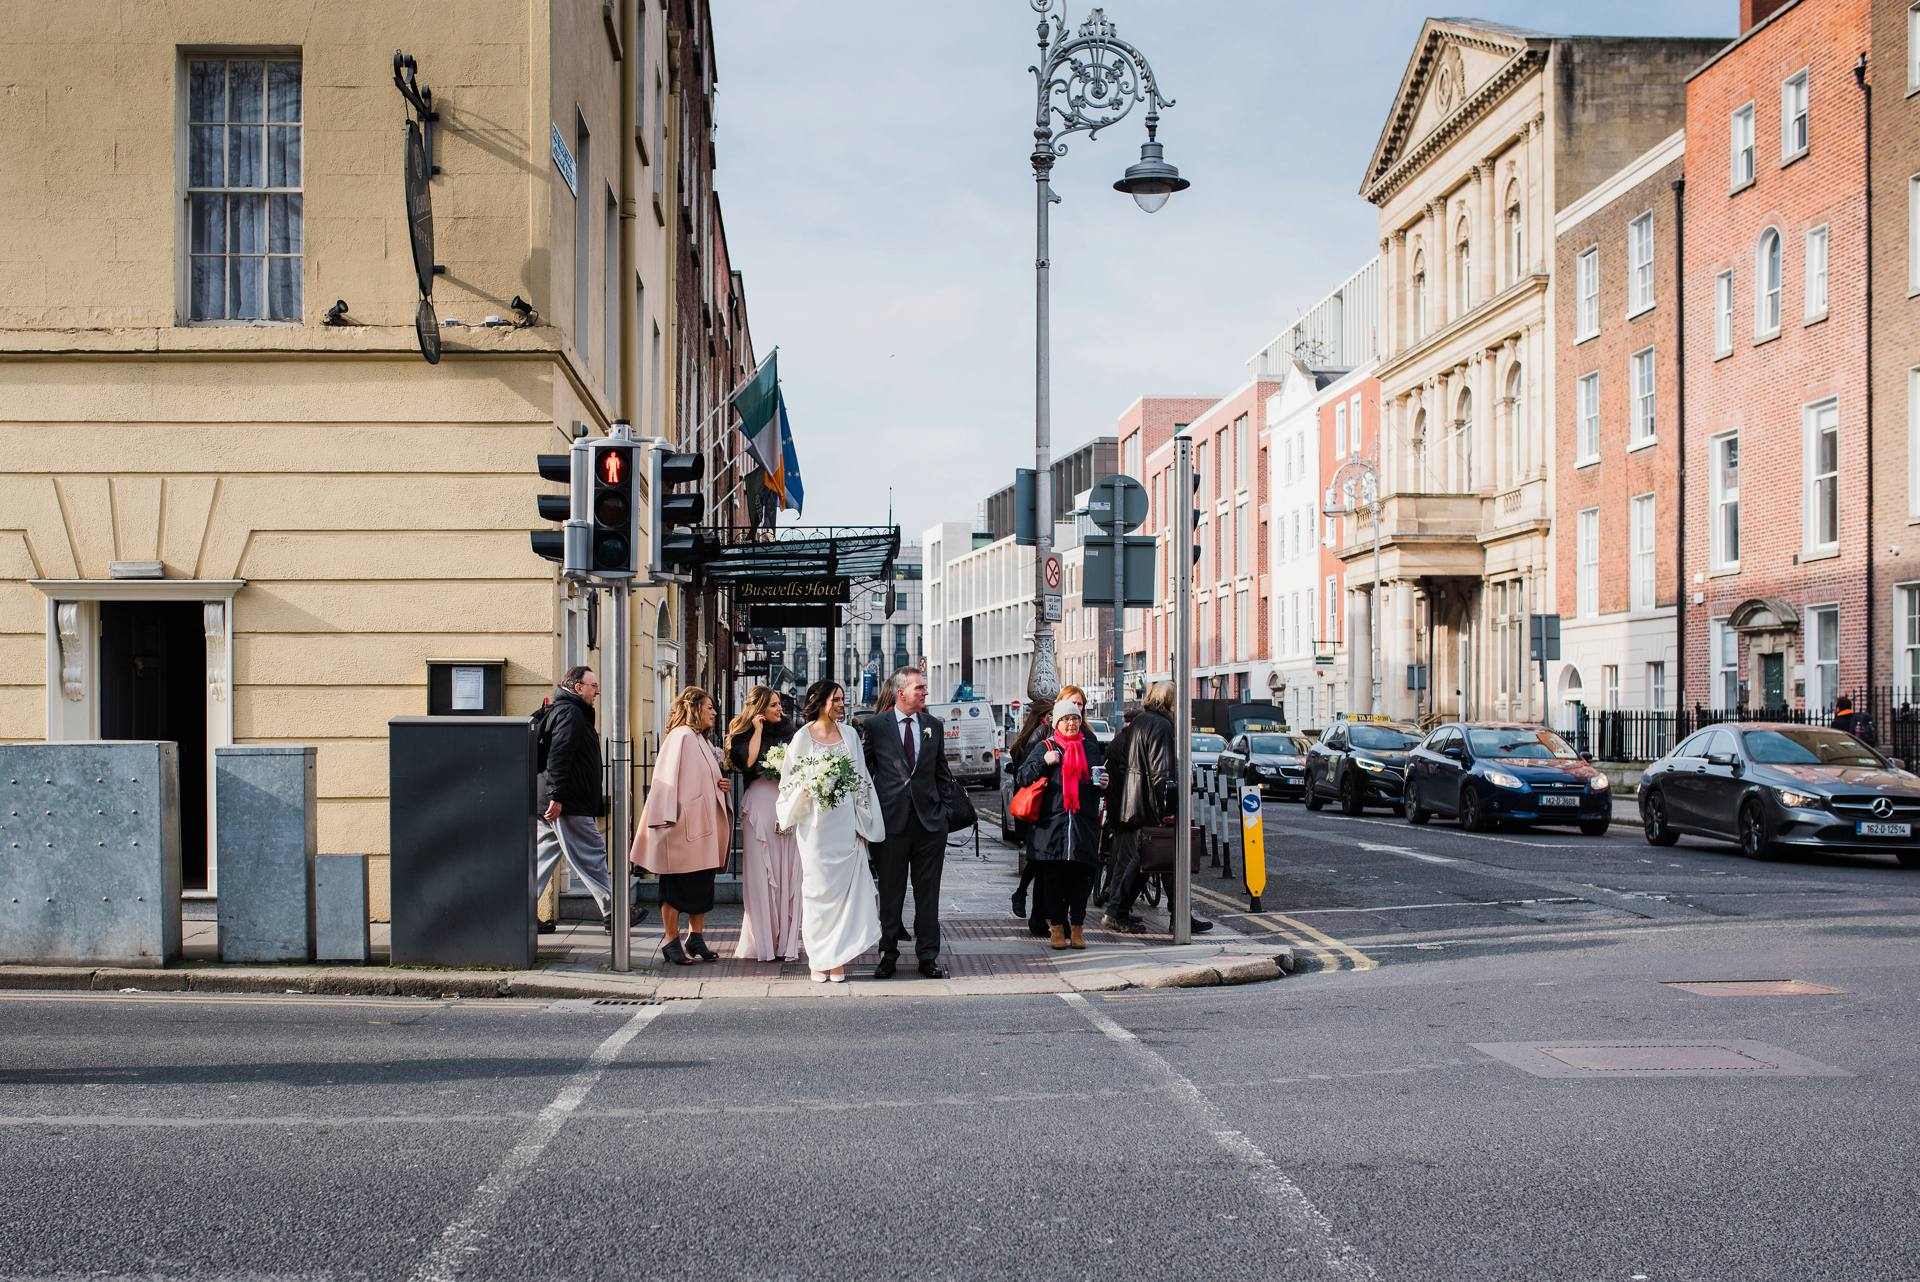 Bridal party waiting at traffic lights in Dublin